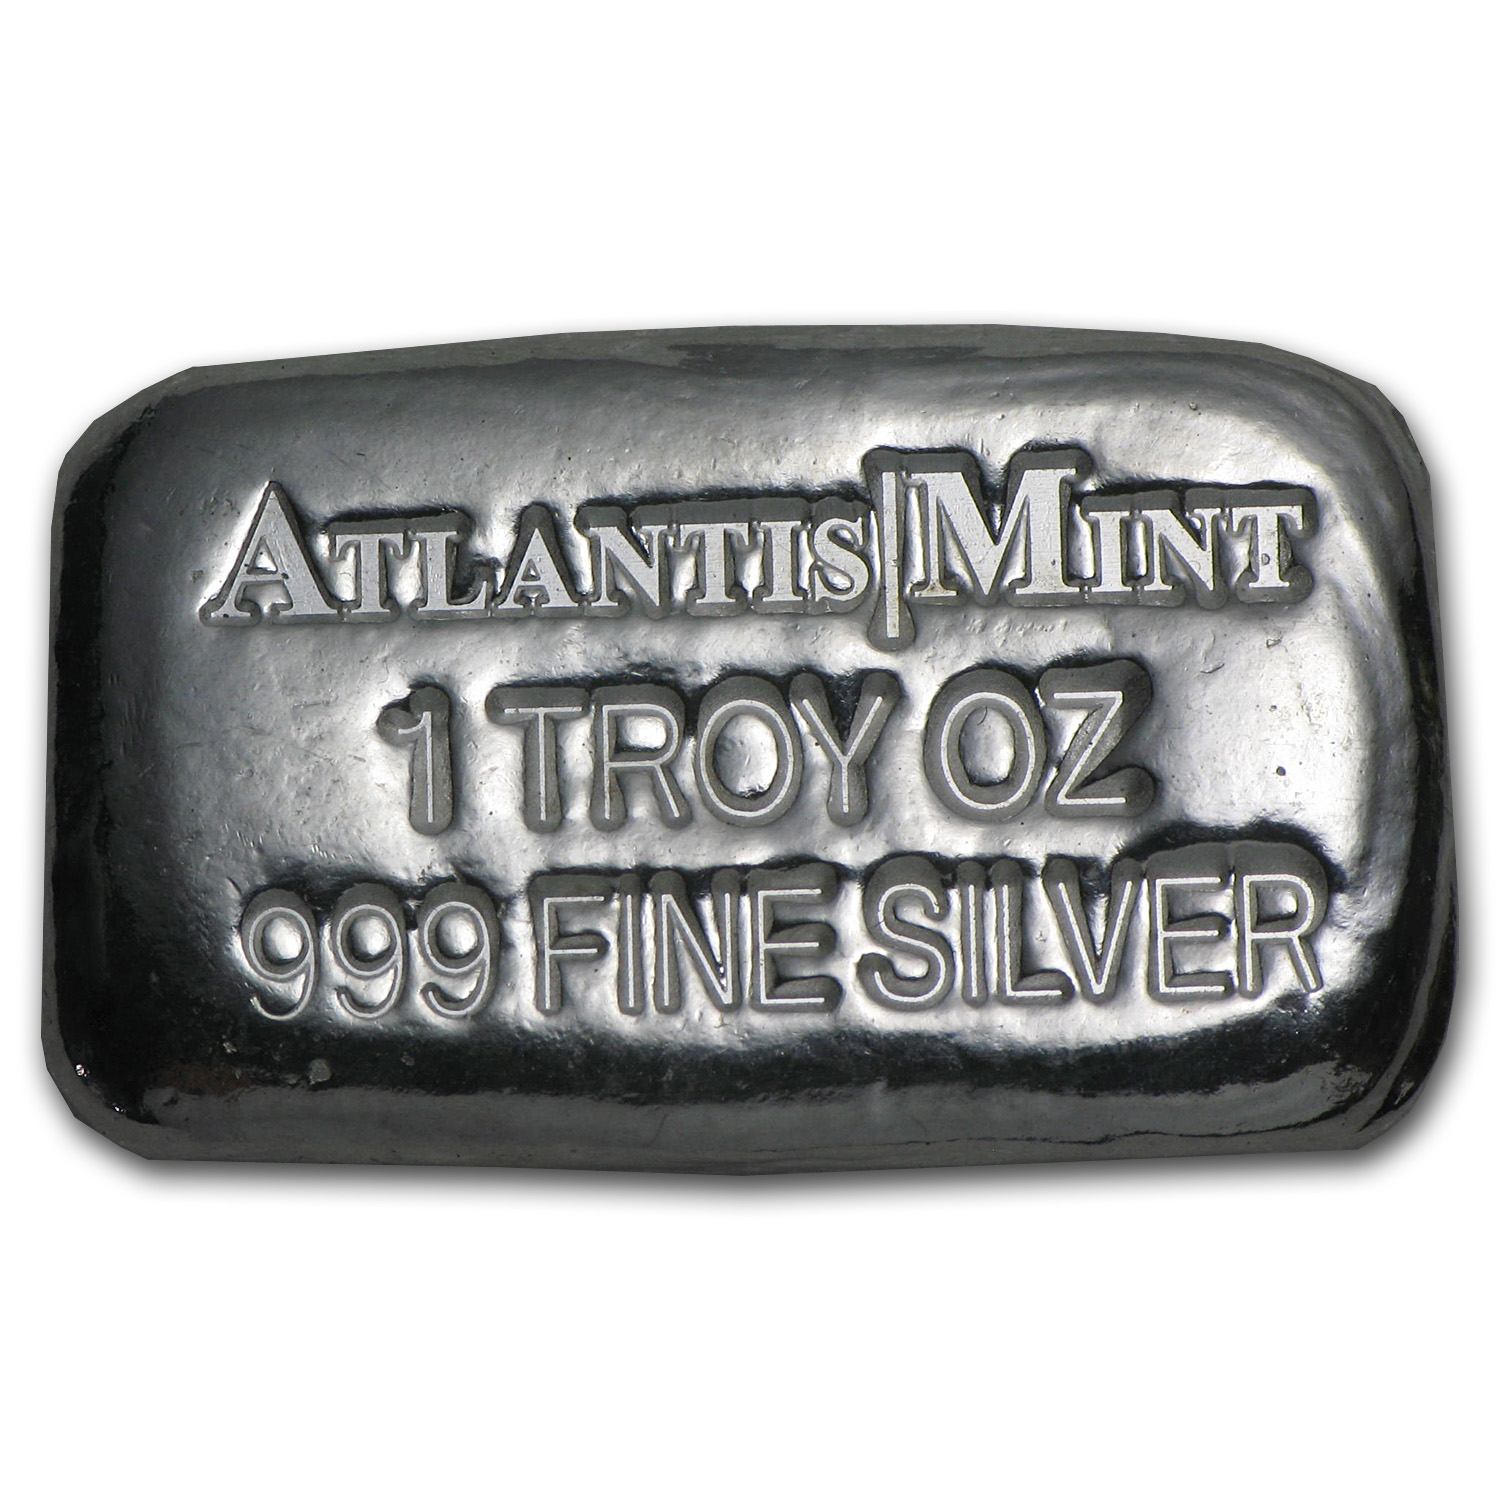 1 oz Silver Bar - Atlantis Mint